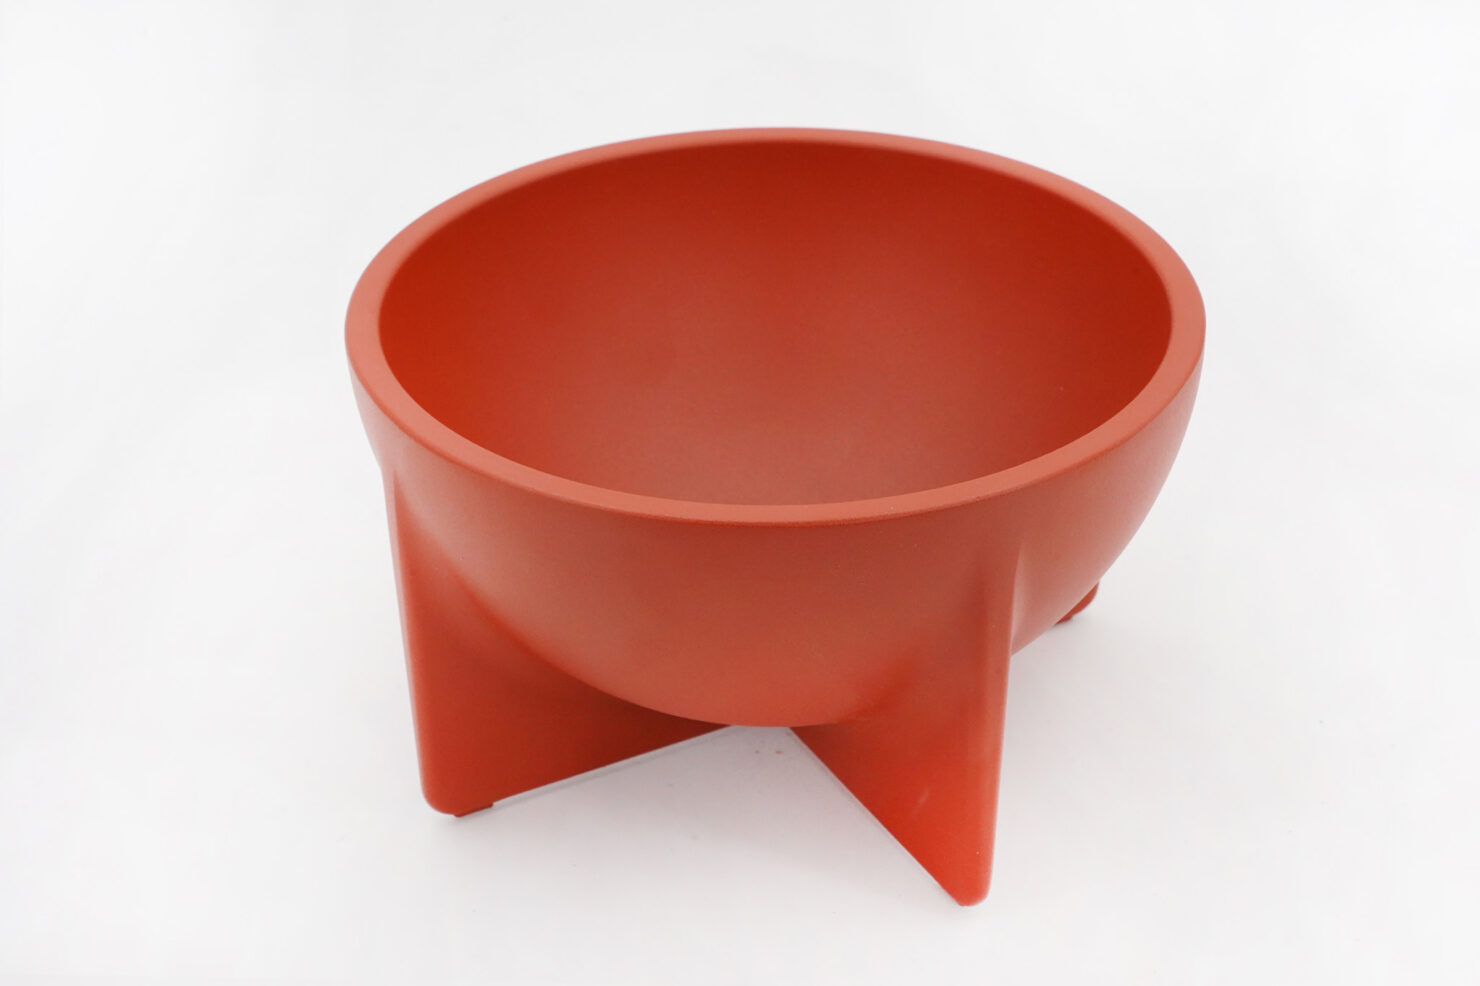 SMALL RAW ALLUMINUM CAST BOWL WITH SMOOTH, VELVET LIKE SURFACE - FORT STANDARD BROOKLYN